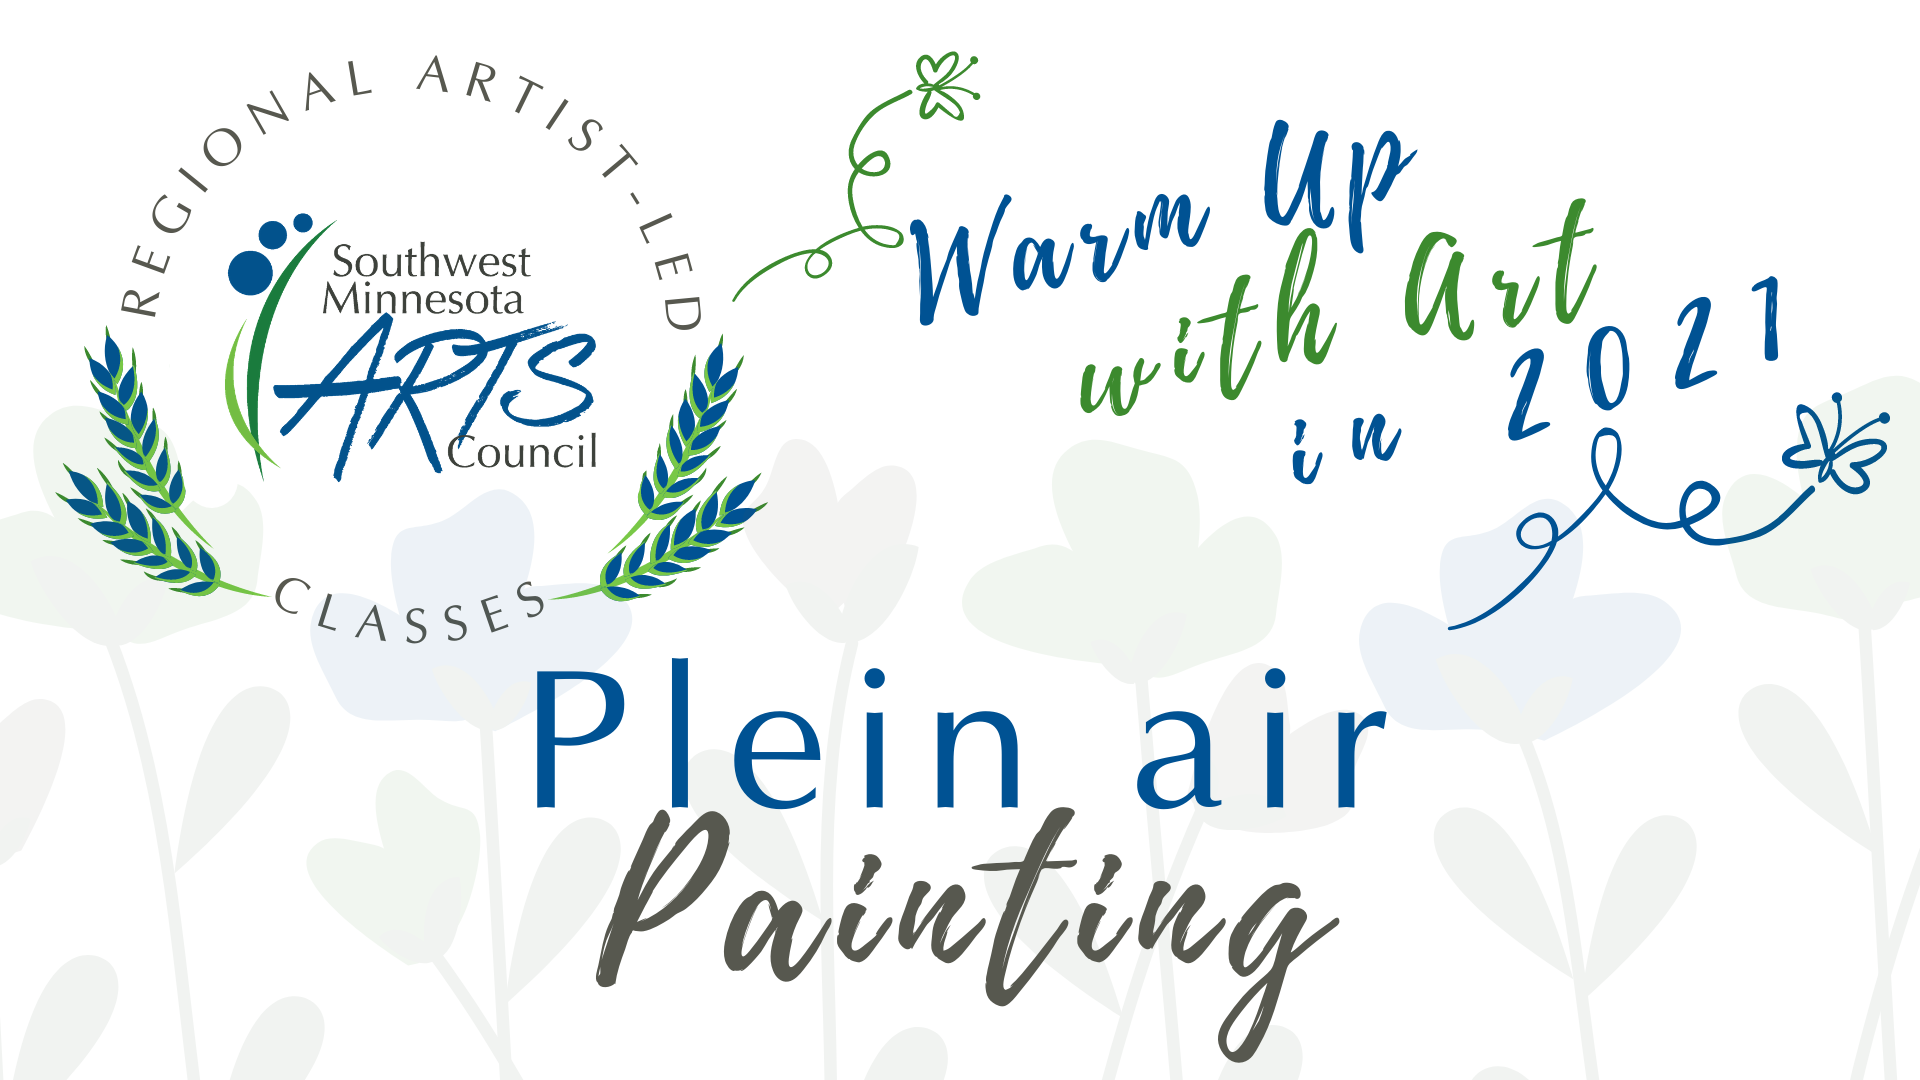 Regional Artist-led Classes, Southwest Minnesota Arts Council. Warm Up with Art in 2021. Plein air painting..